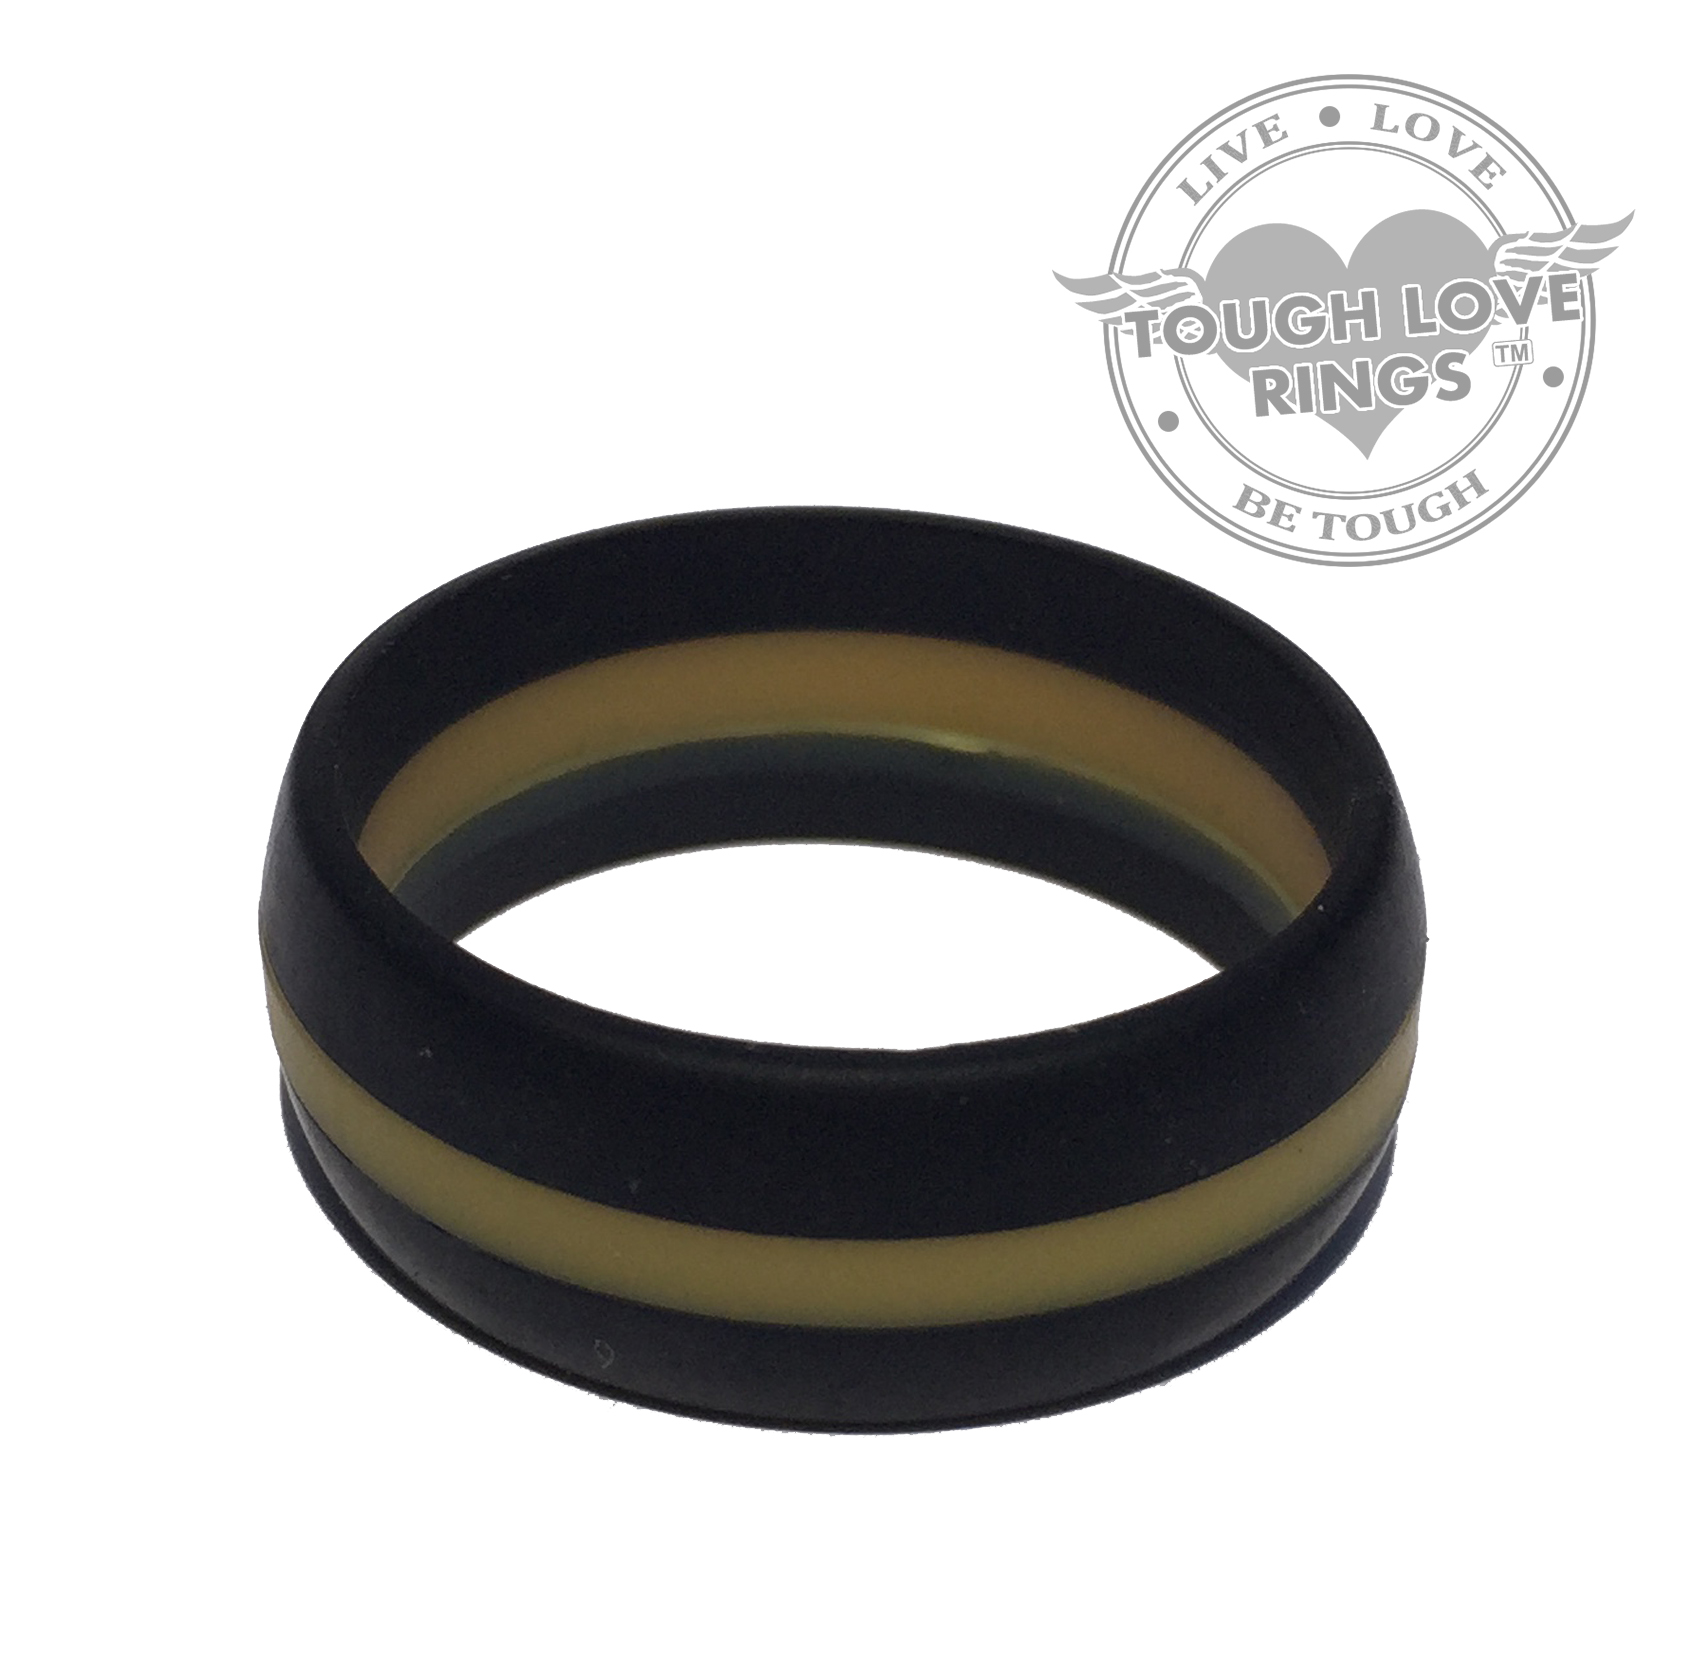 Striped BLACK GOLD LINE Silicone Ring Wide band 8 7mm – Tough